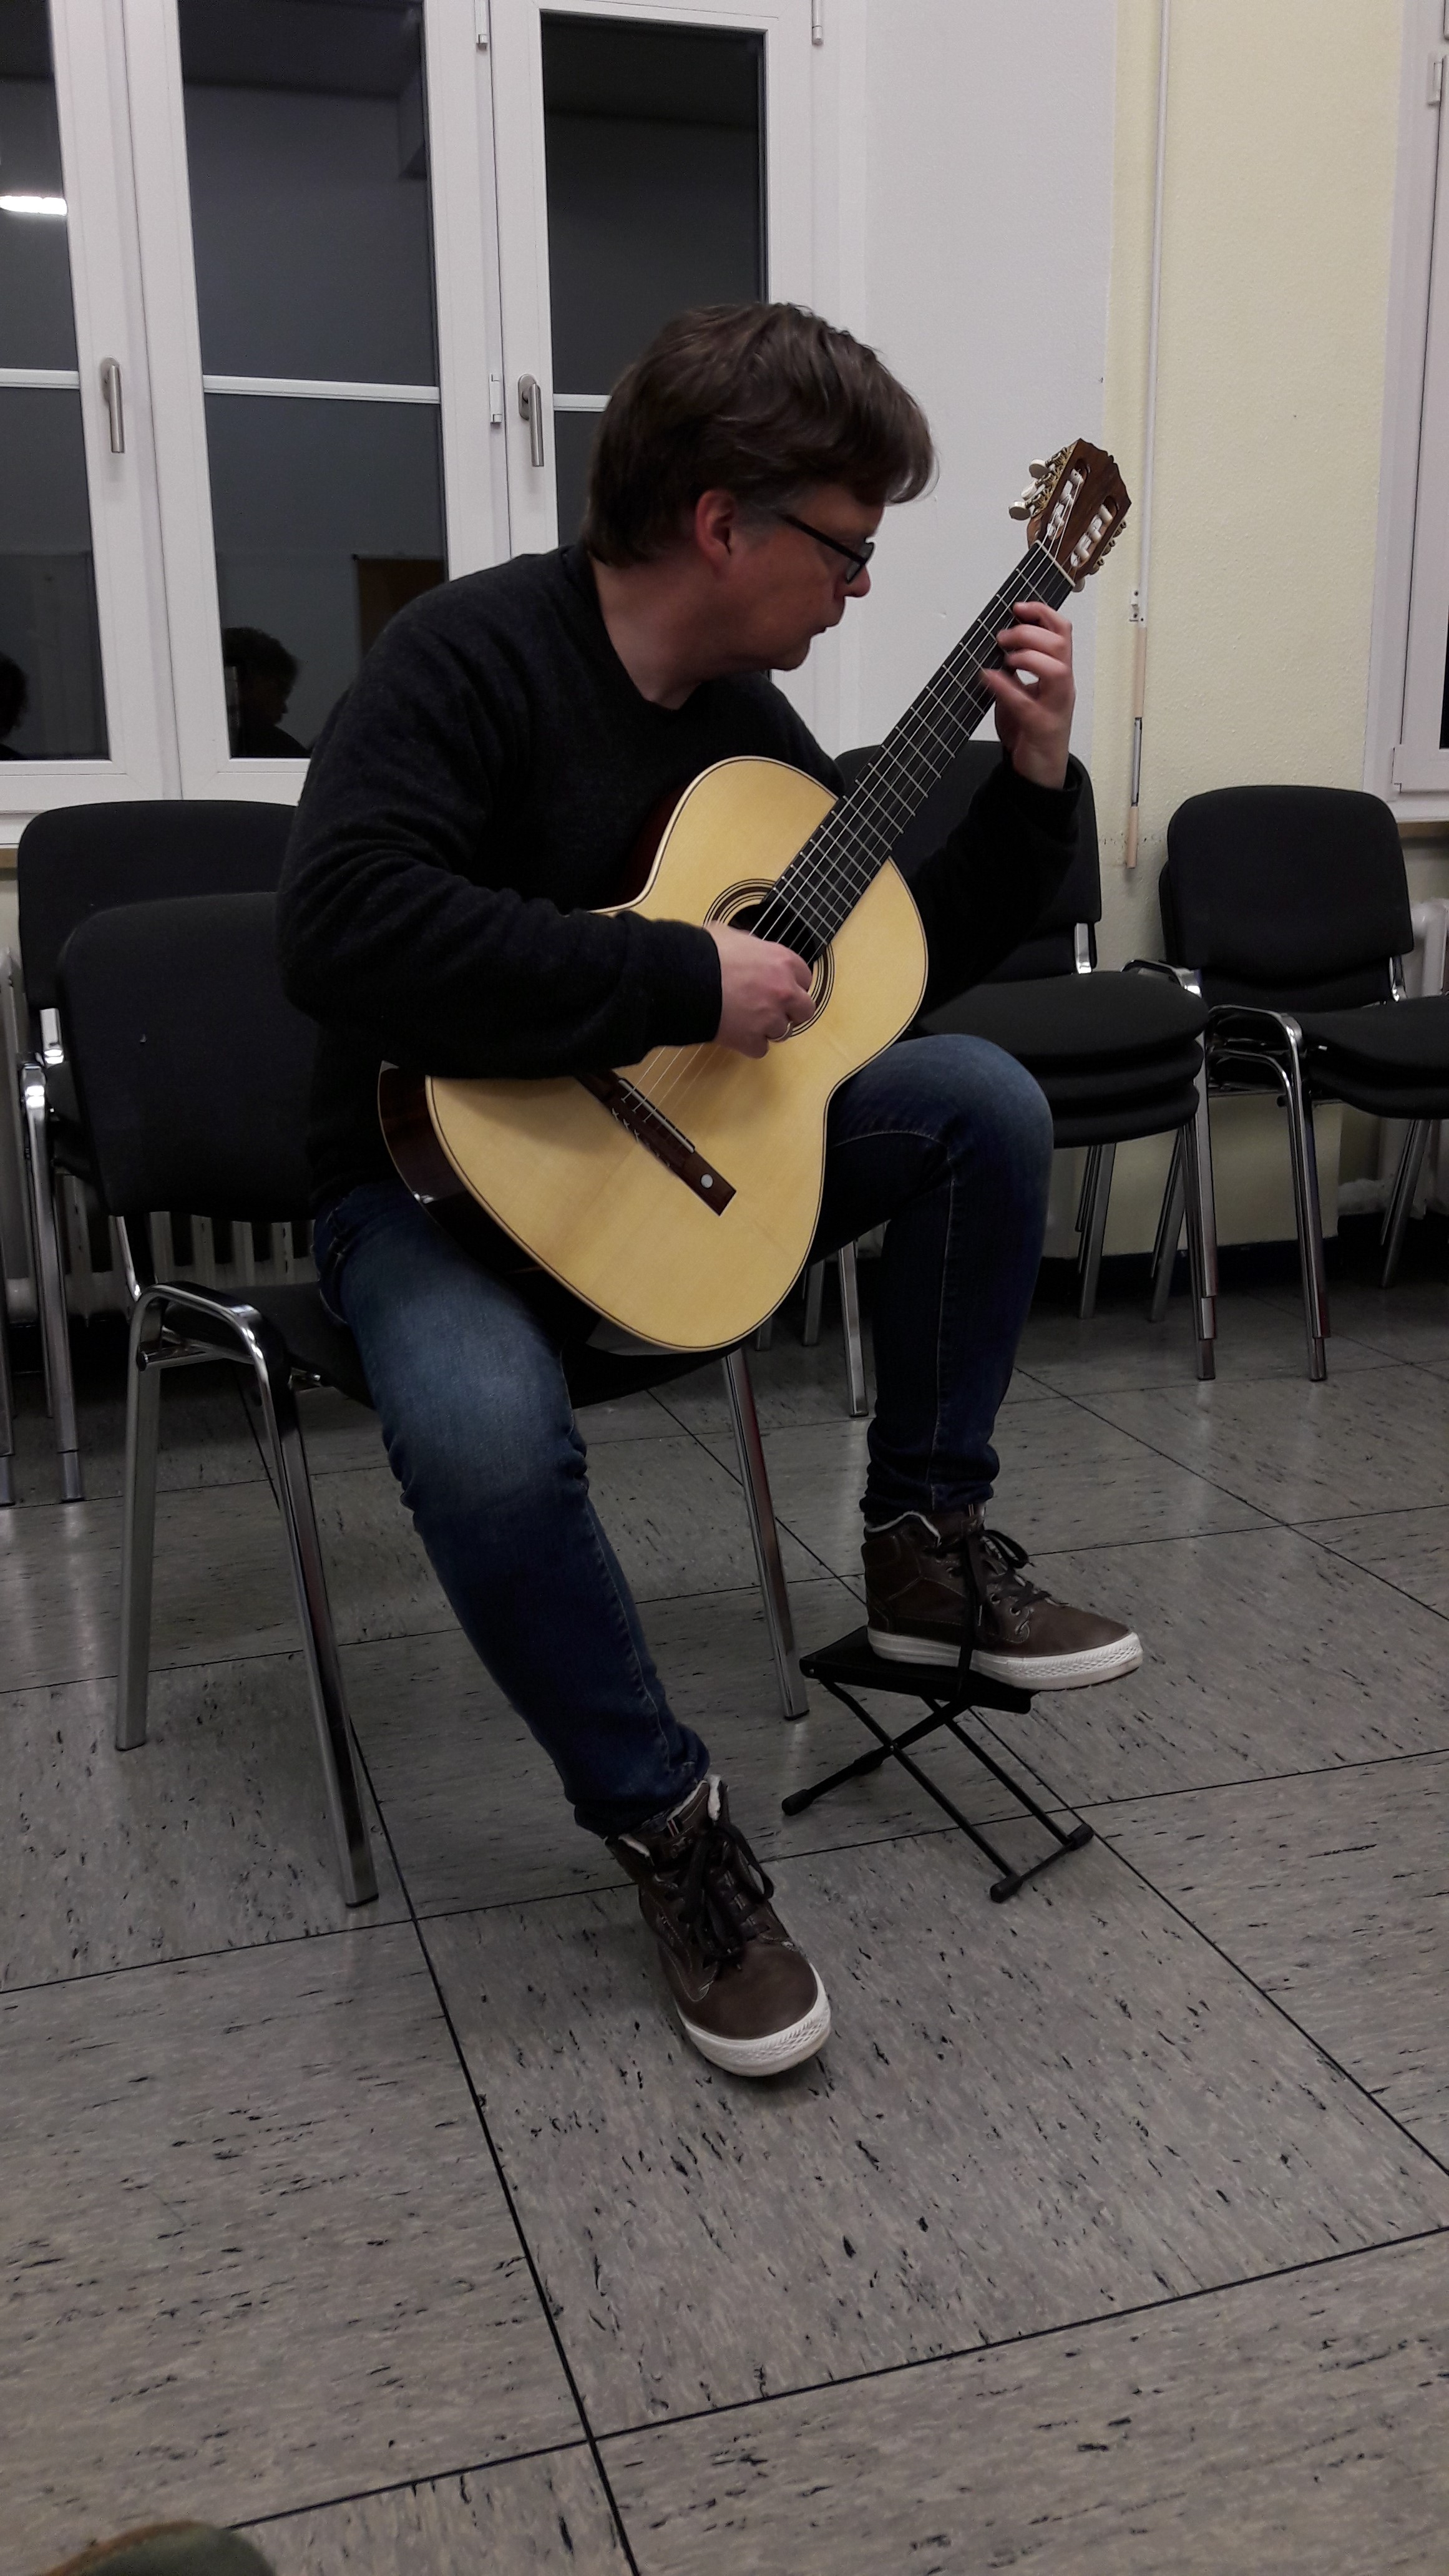 Dominik Jung, guitar teacher in Siegen trying out Den Toom Luthier guitar in Rosewood.